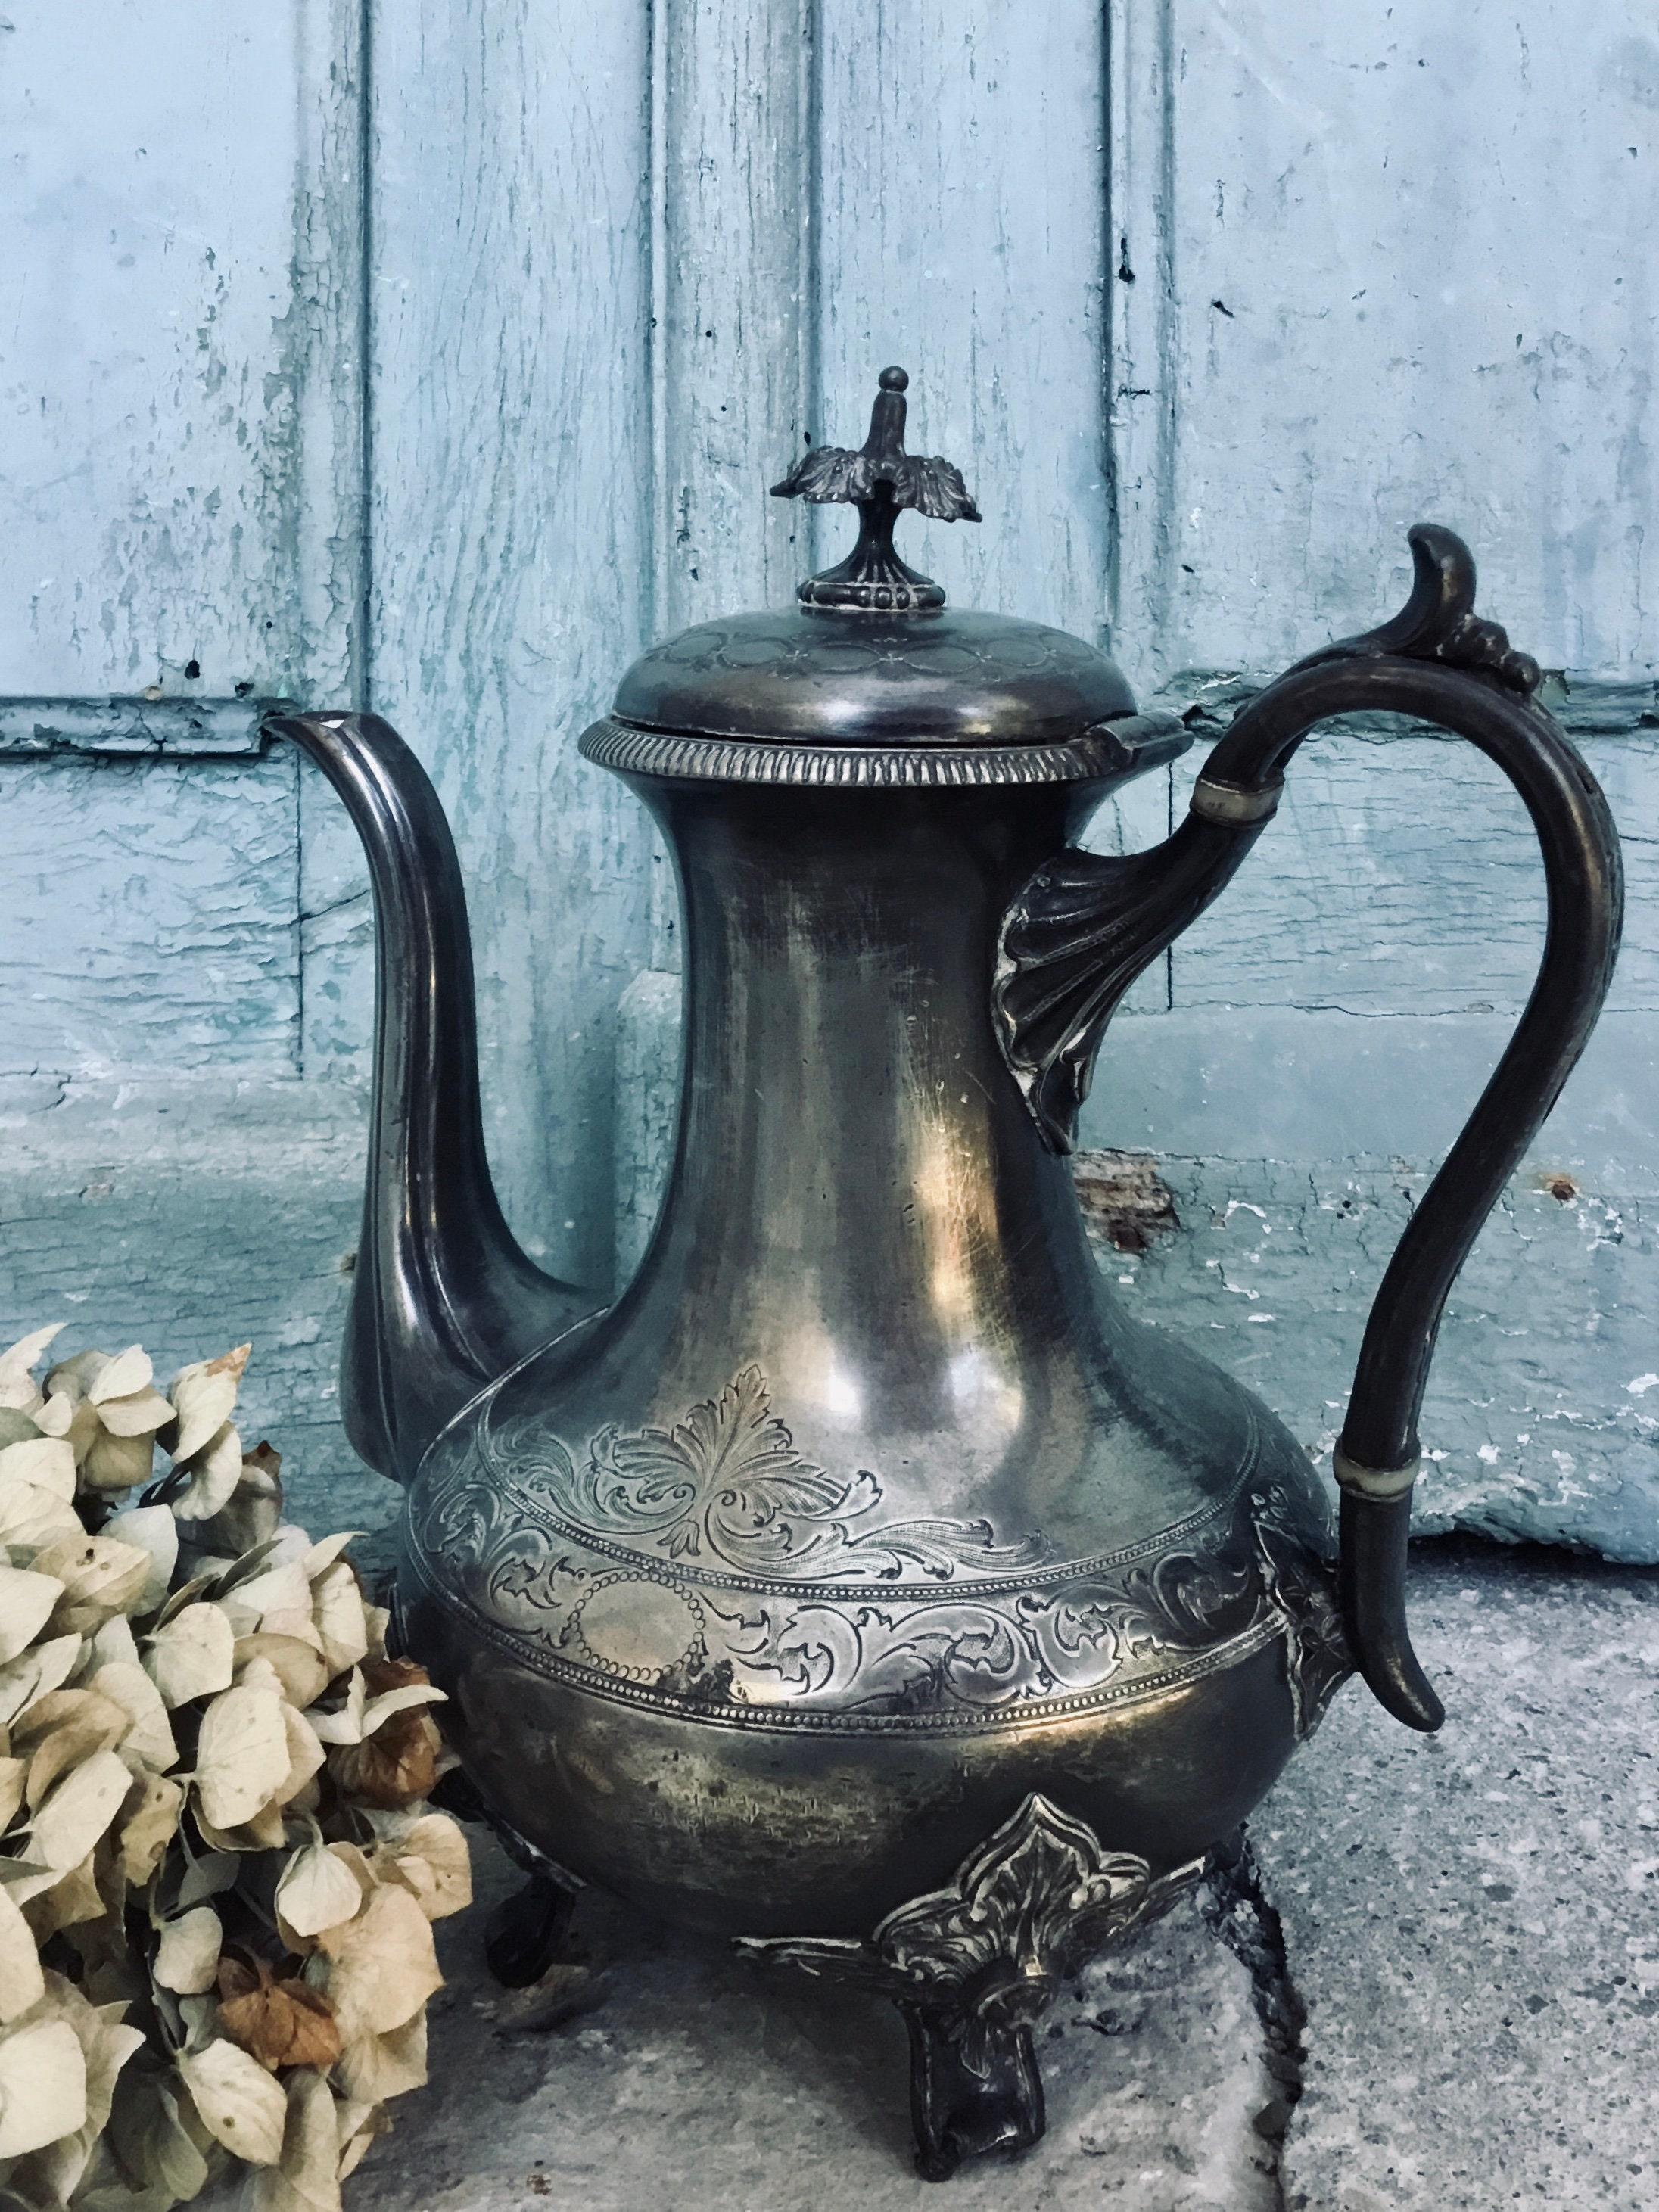 Art Noveau Silver Plate Pewter Tea Or Coffee Pot A Darling Antique Silver Plate Pewter Tea Coffee Pot 19th Century Made In England